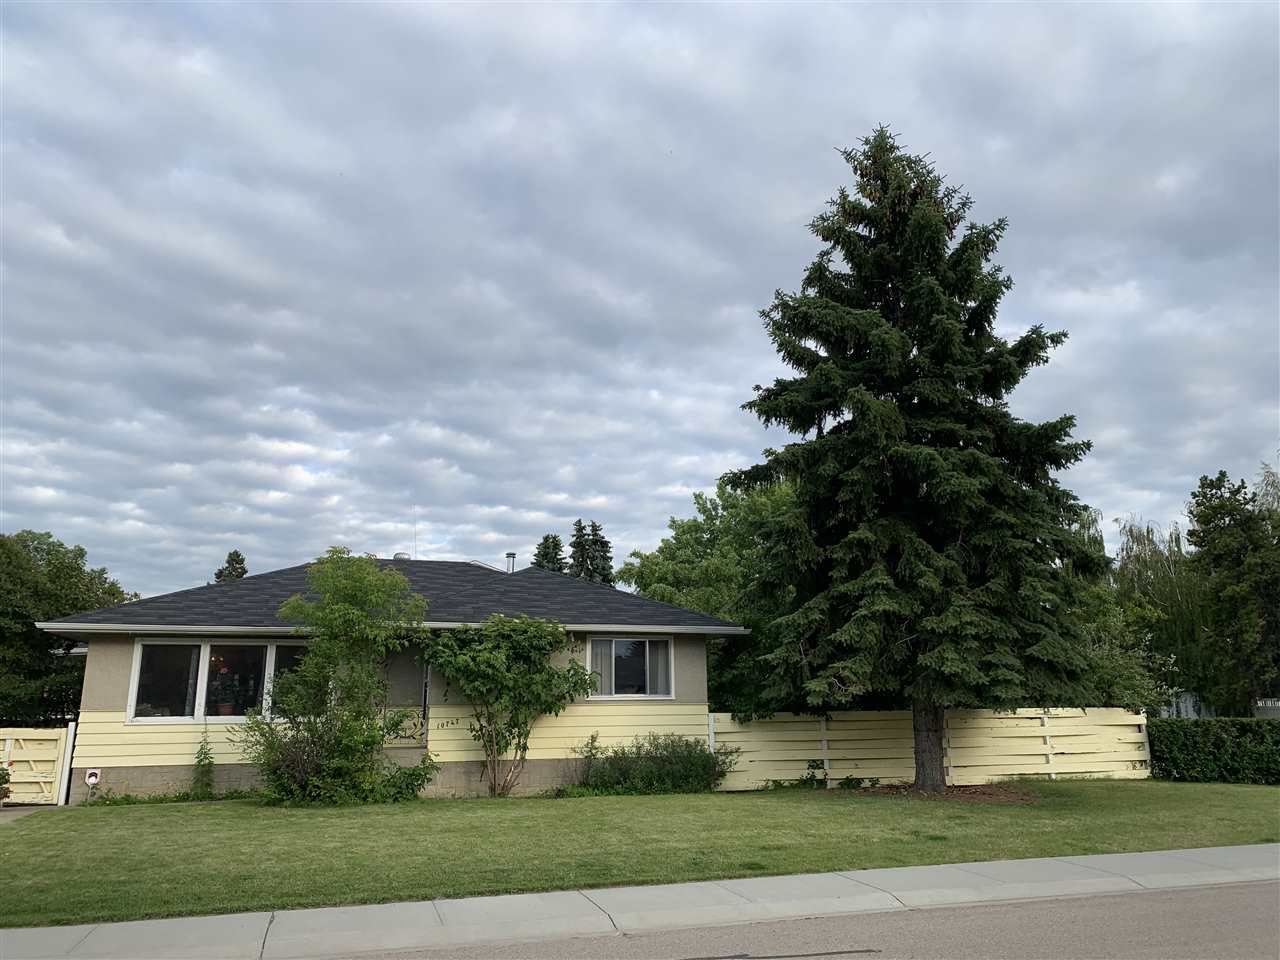 Main Photo: 10747 63 Street in Edmonton: Zone 19 House for sale : MLS®# E4164234